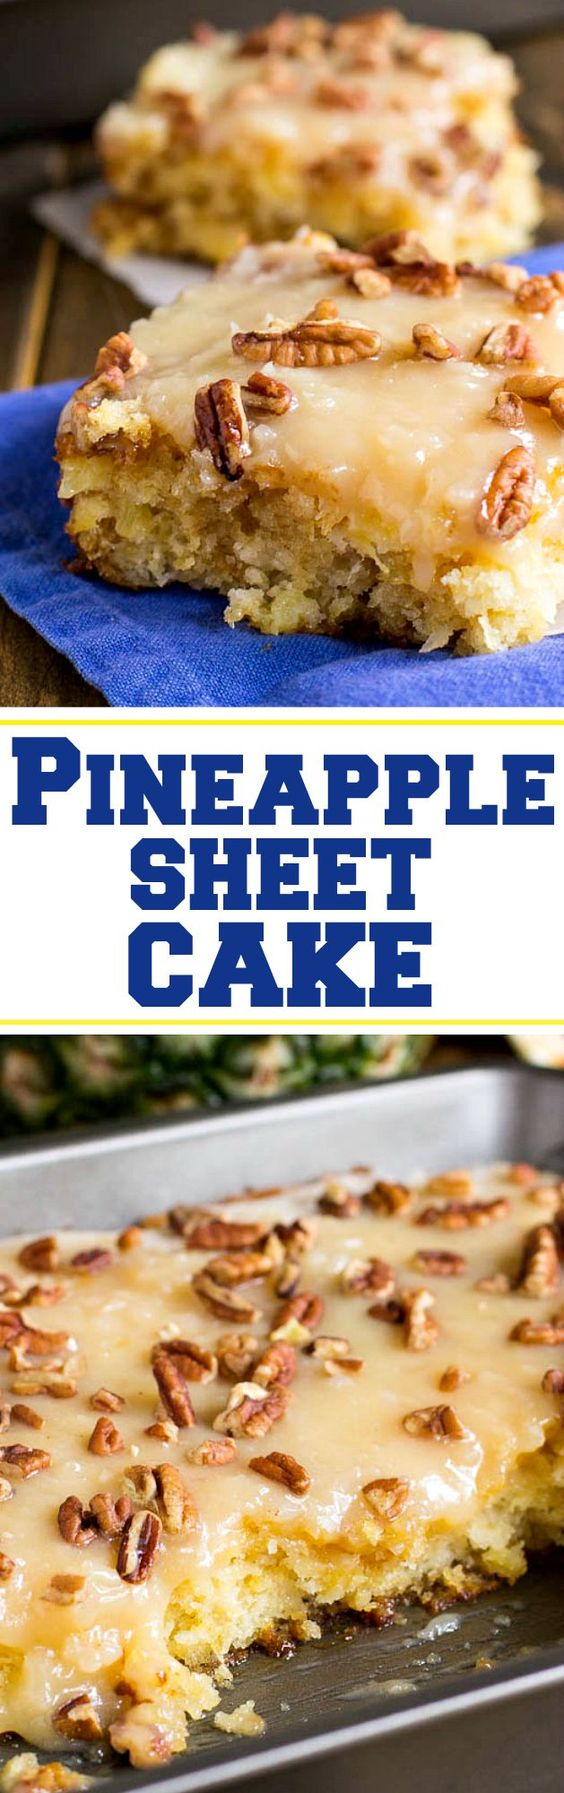 Pineapple Sheet Cake Dessert Recipe via Spicy Southern Kitchen ~ flavored and moistened with crushed pineapple and topped with a sweet icing laced with shredded coconut, and sprinkled with pecans is a wonderful dessert to make to feed a crowd. The Best EASY Sheet Cakes Recipes - Simple and Quick Party Crowds Desserts for Holidays, Special Occasions and Family Celebrations #sheetcakerecipes #sheetcake #sheetcakes #cakerecipes #cakes #dessertforacrowd #partydesserts #christmasdesserts #thanksgivingdesserts #newyearseve #birthdaydesserts